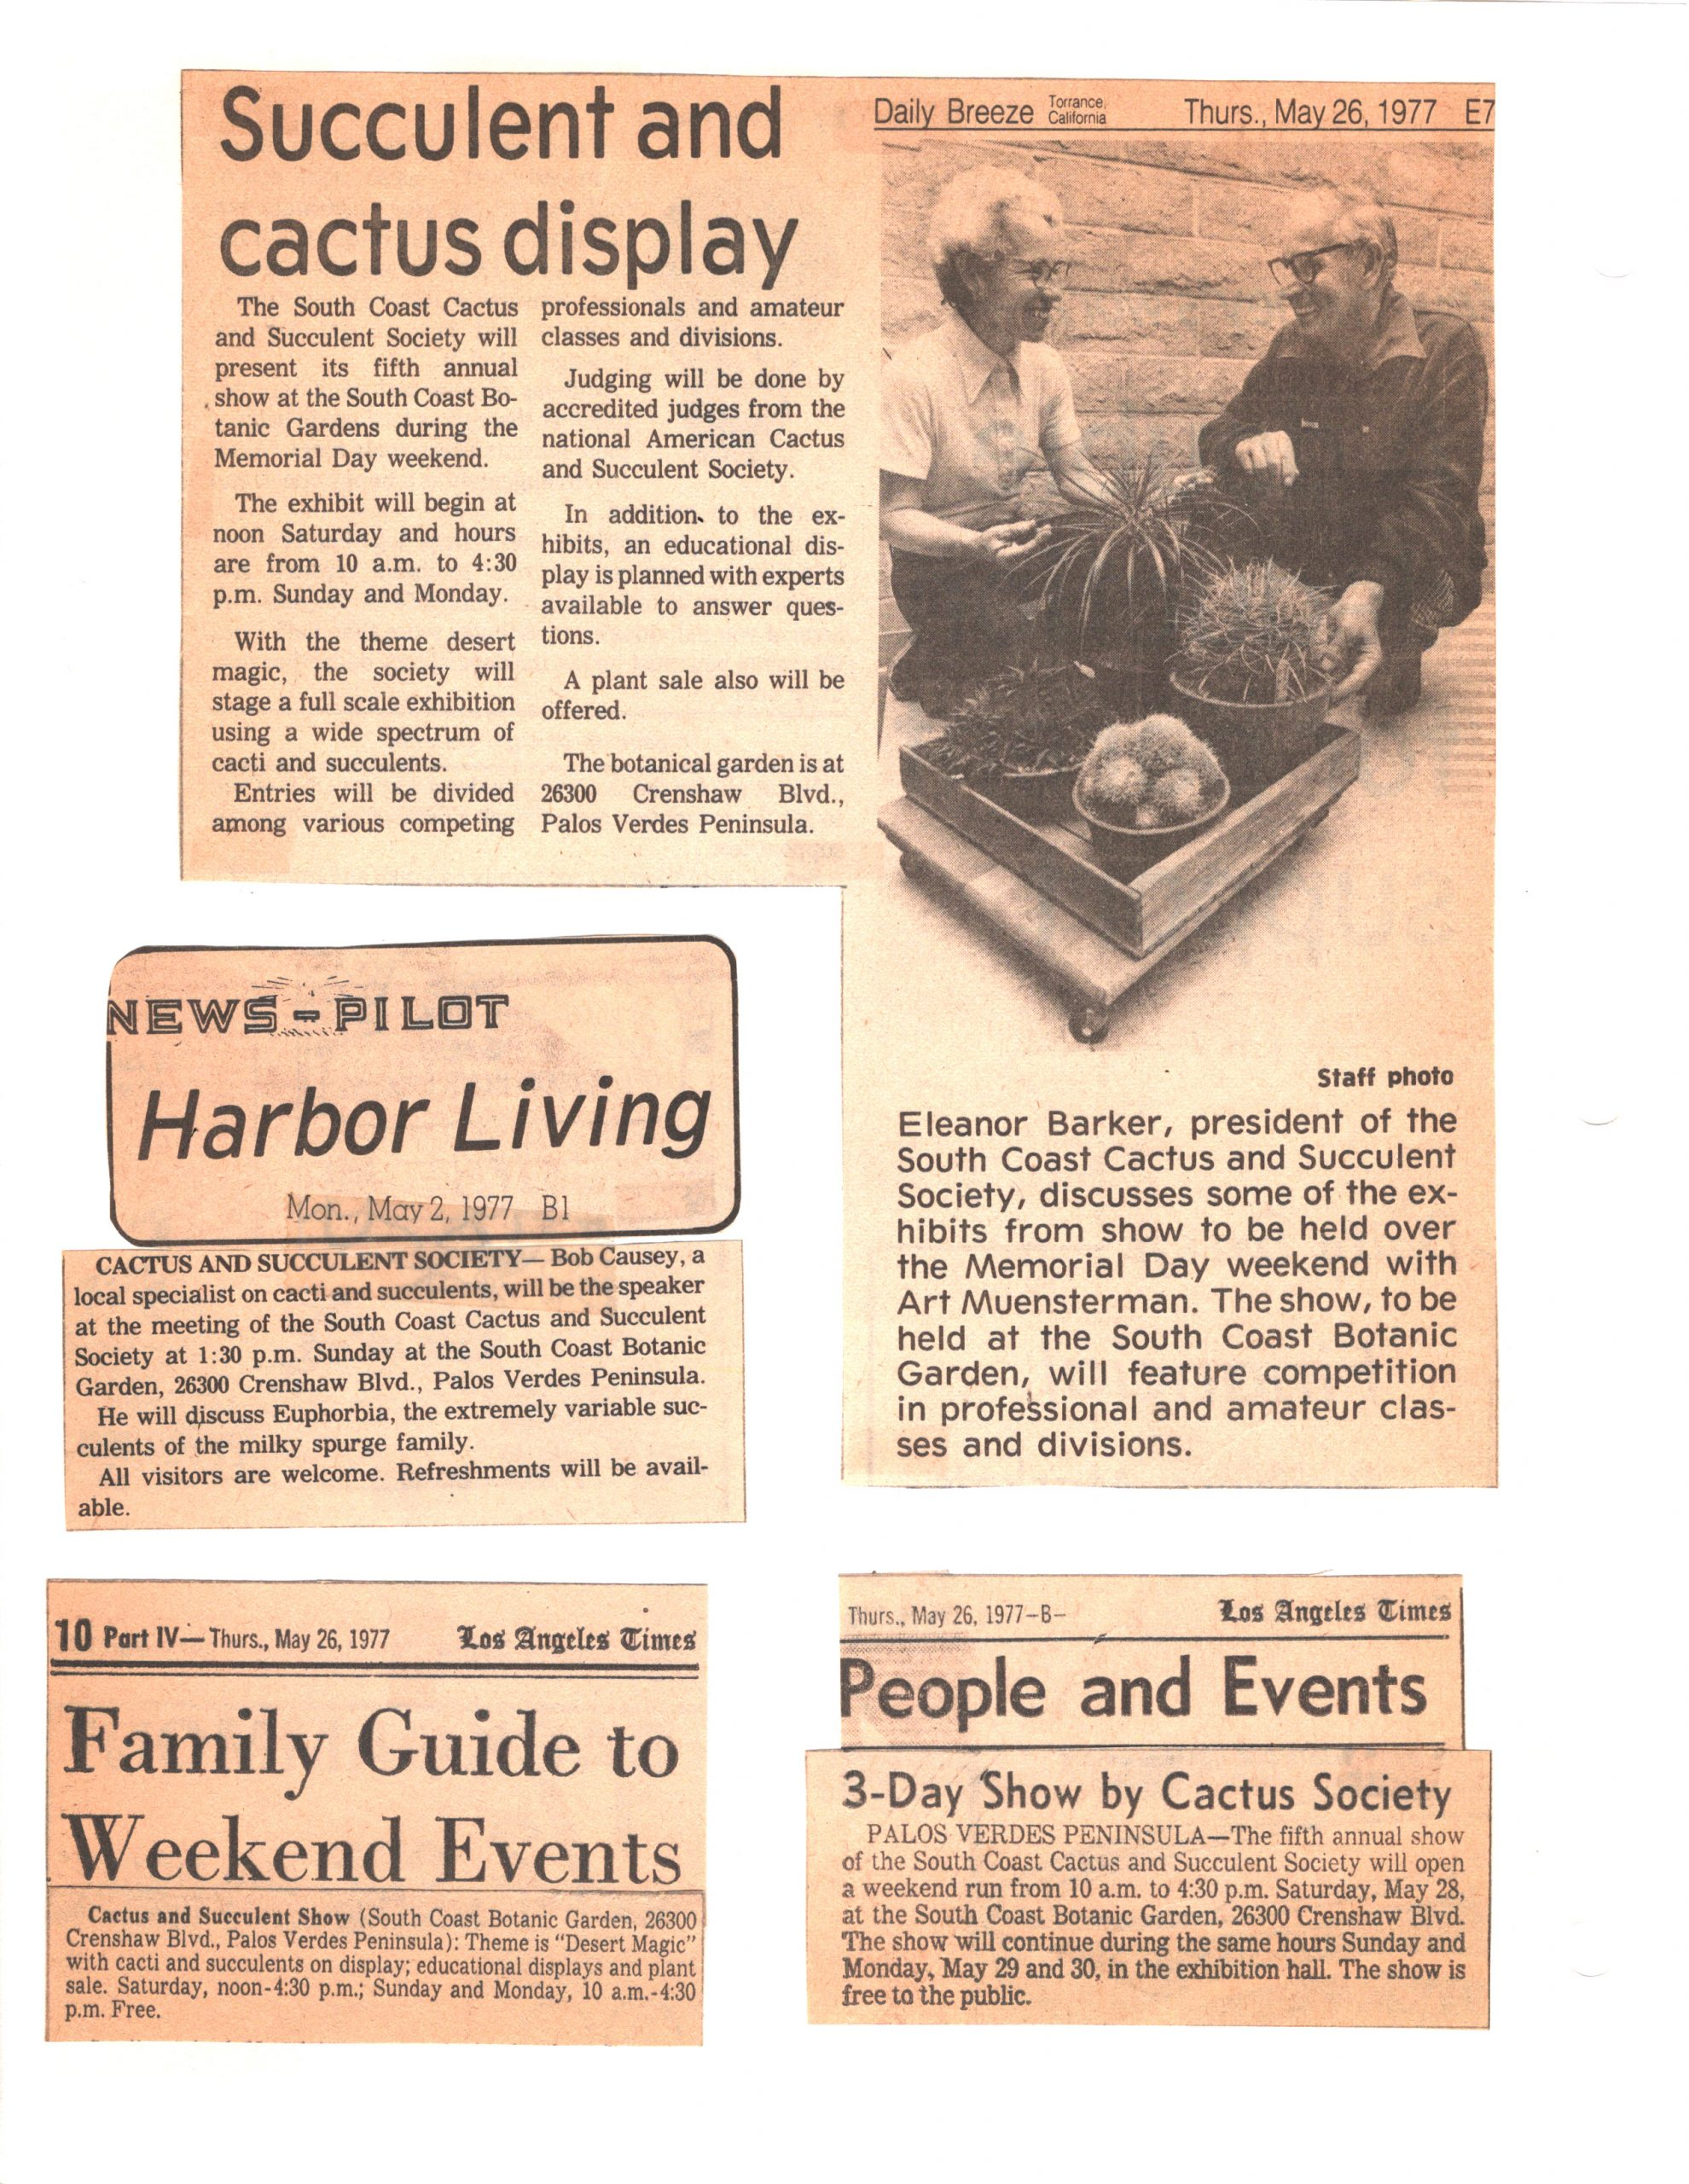 SCCSS-Cuttings-1977-05-26